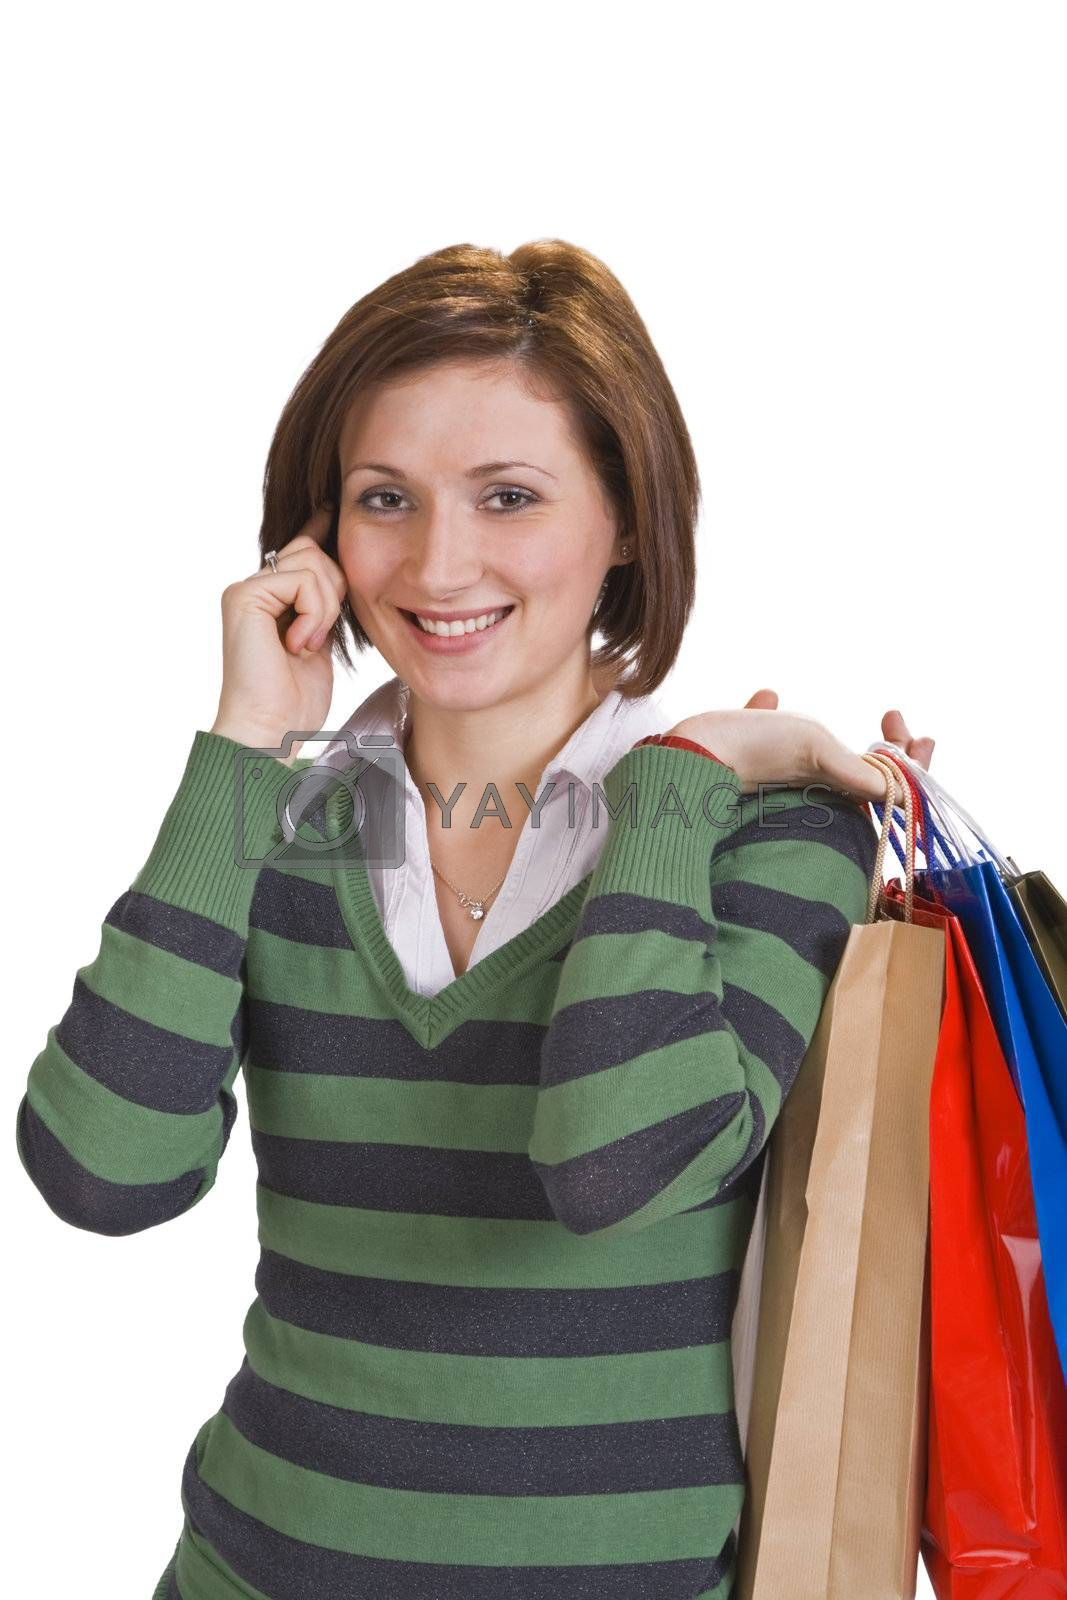 Portrait of a young woman with shopping bags using a mobile phone.